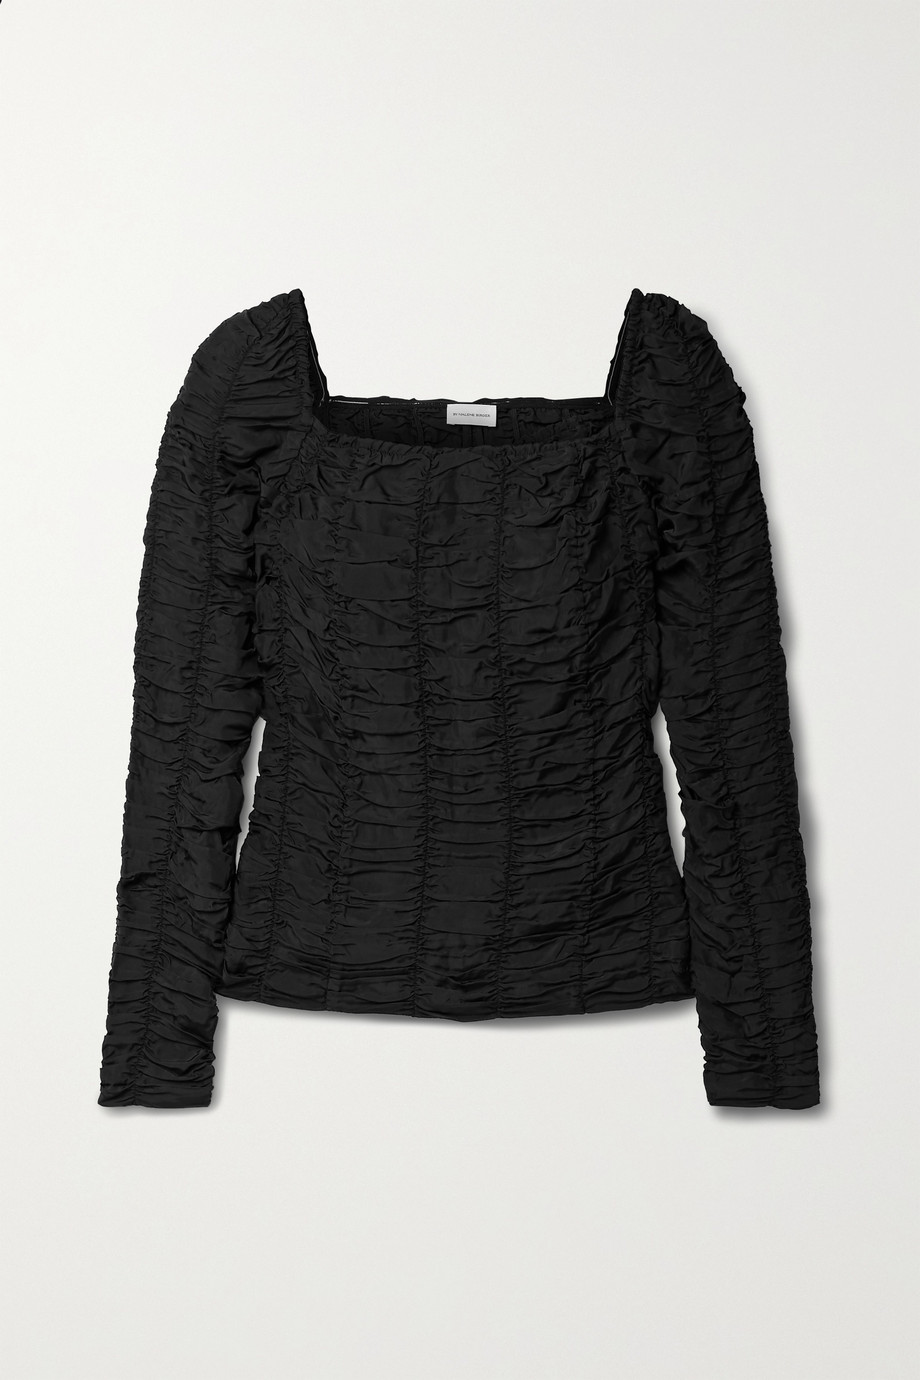 BY MALENE BIRGER Matelea ruched taffeta top